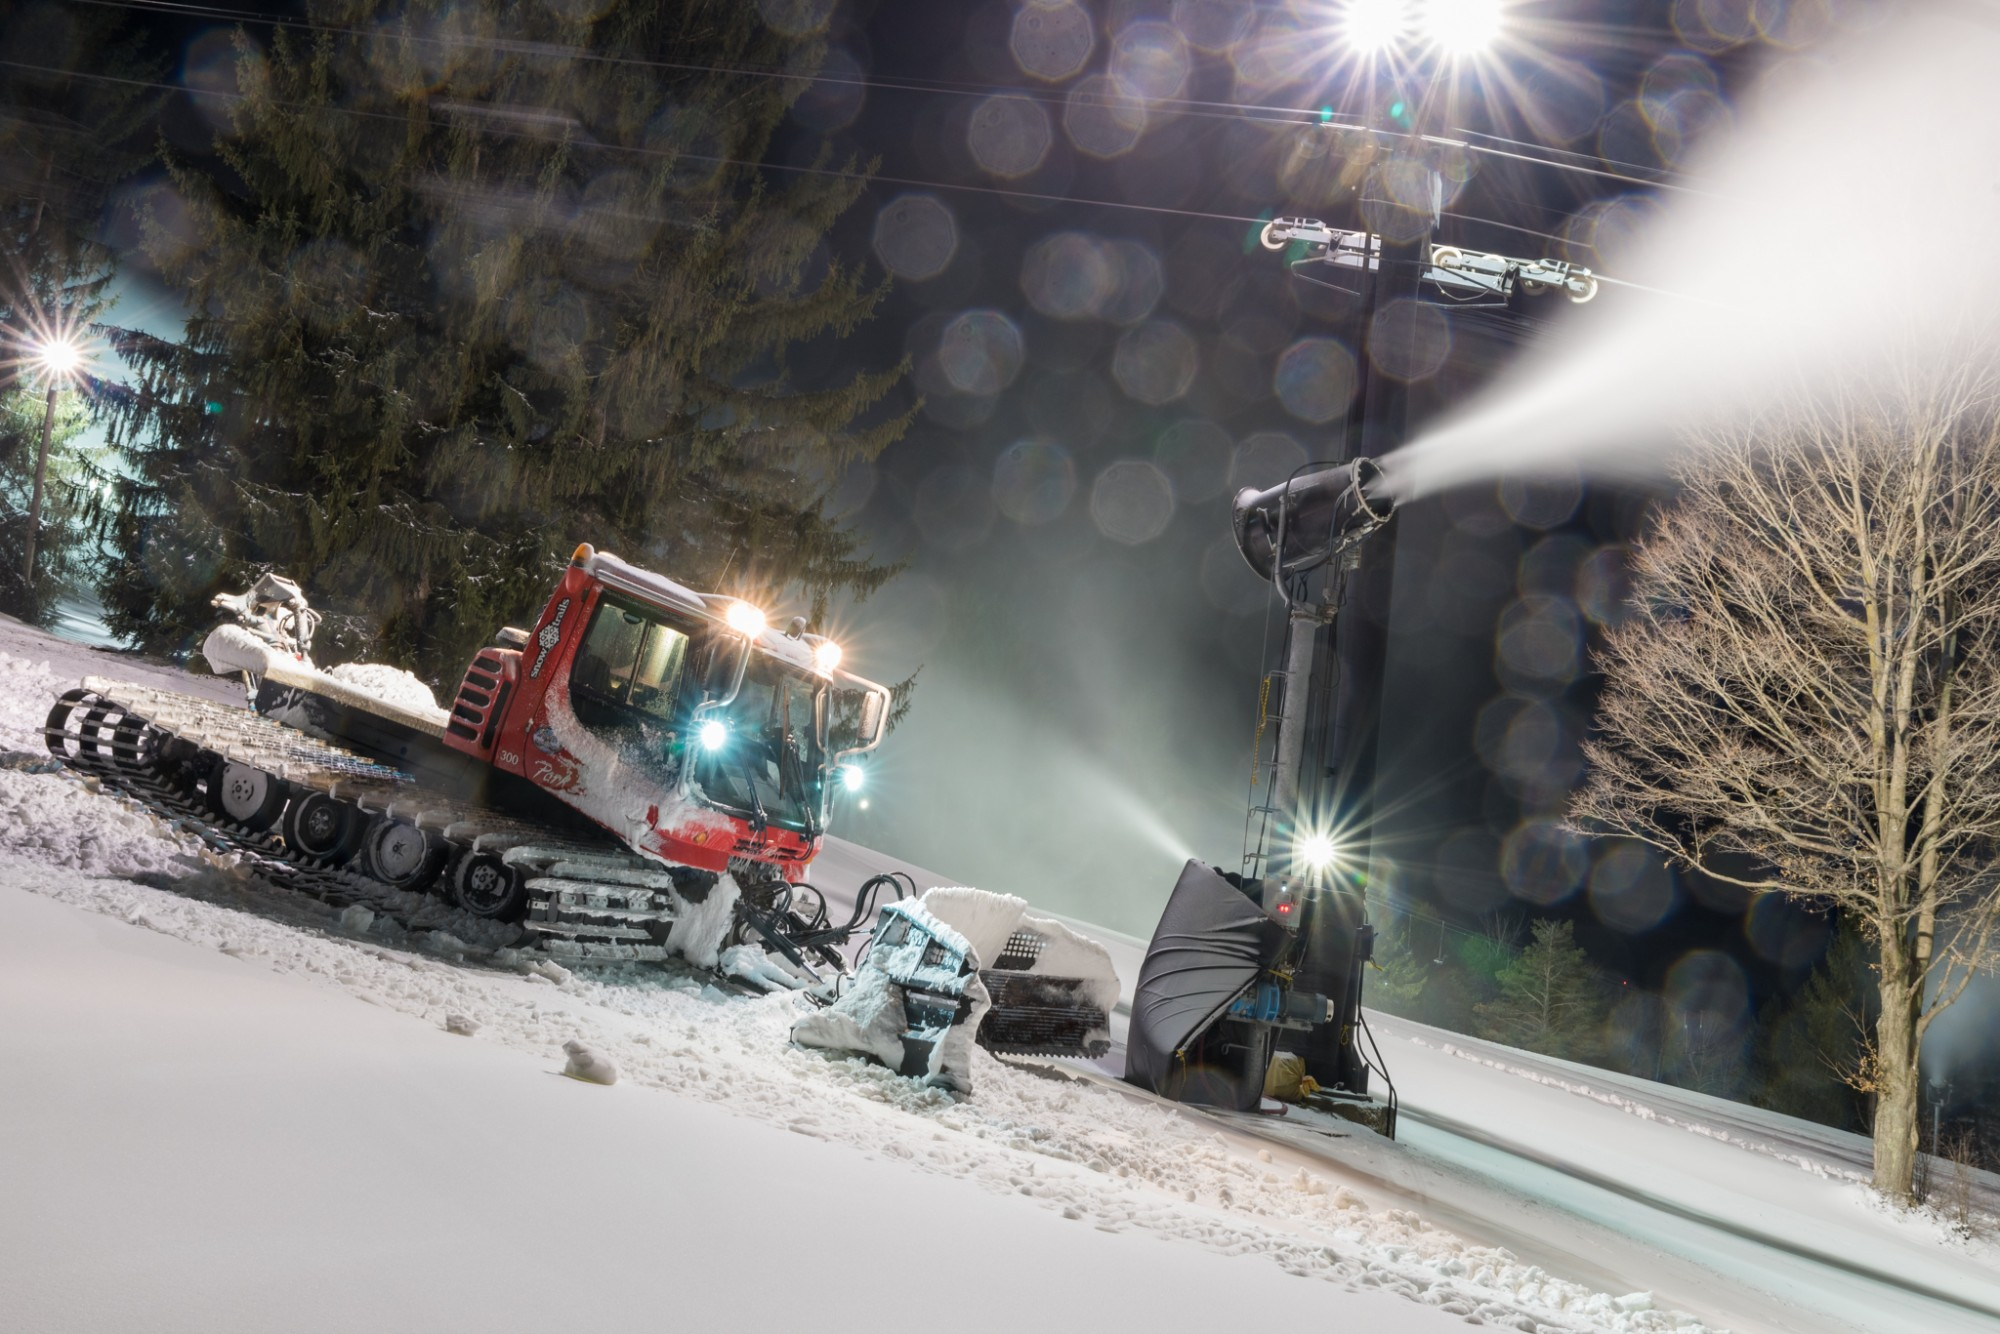 Snowmaking Continues in March, Never Before in Snow Trails History